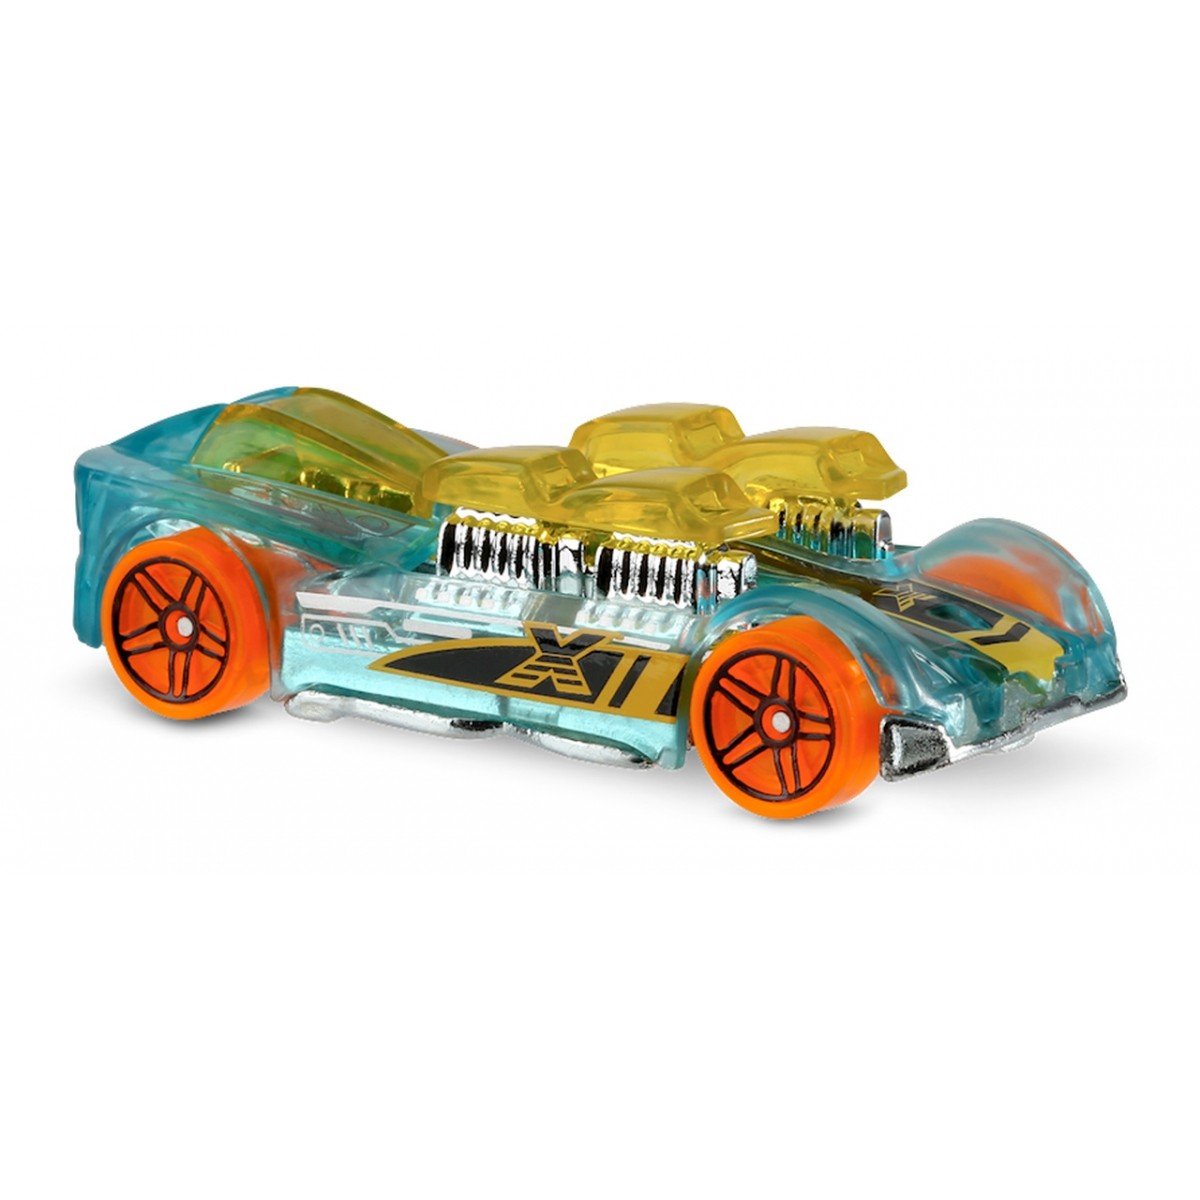 Carrinho Hot Wheels: What-4-2 Transparante